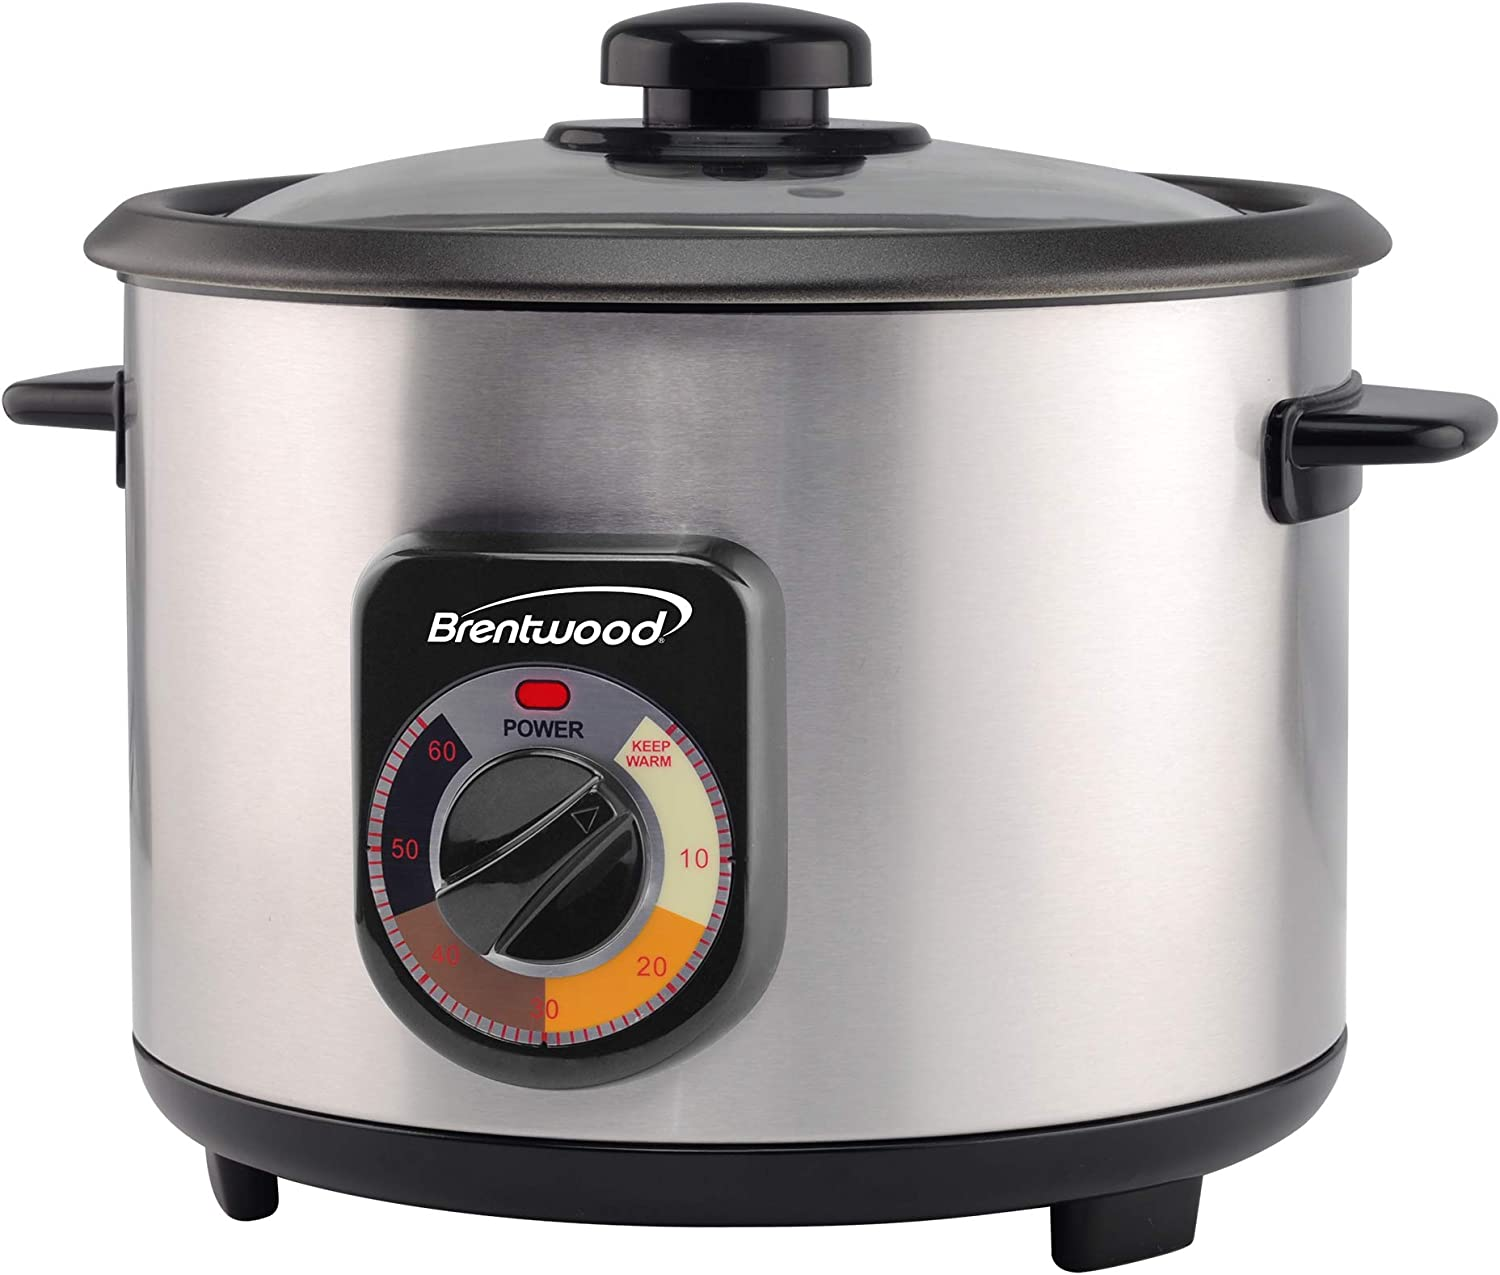 Brentwood Crunchy Persian Rice Cooker, Stainless Steel (8-Cup Uncooked/16-Cup Cooke)